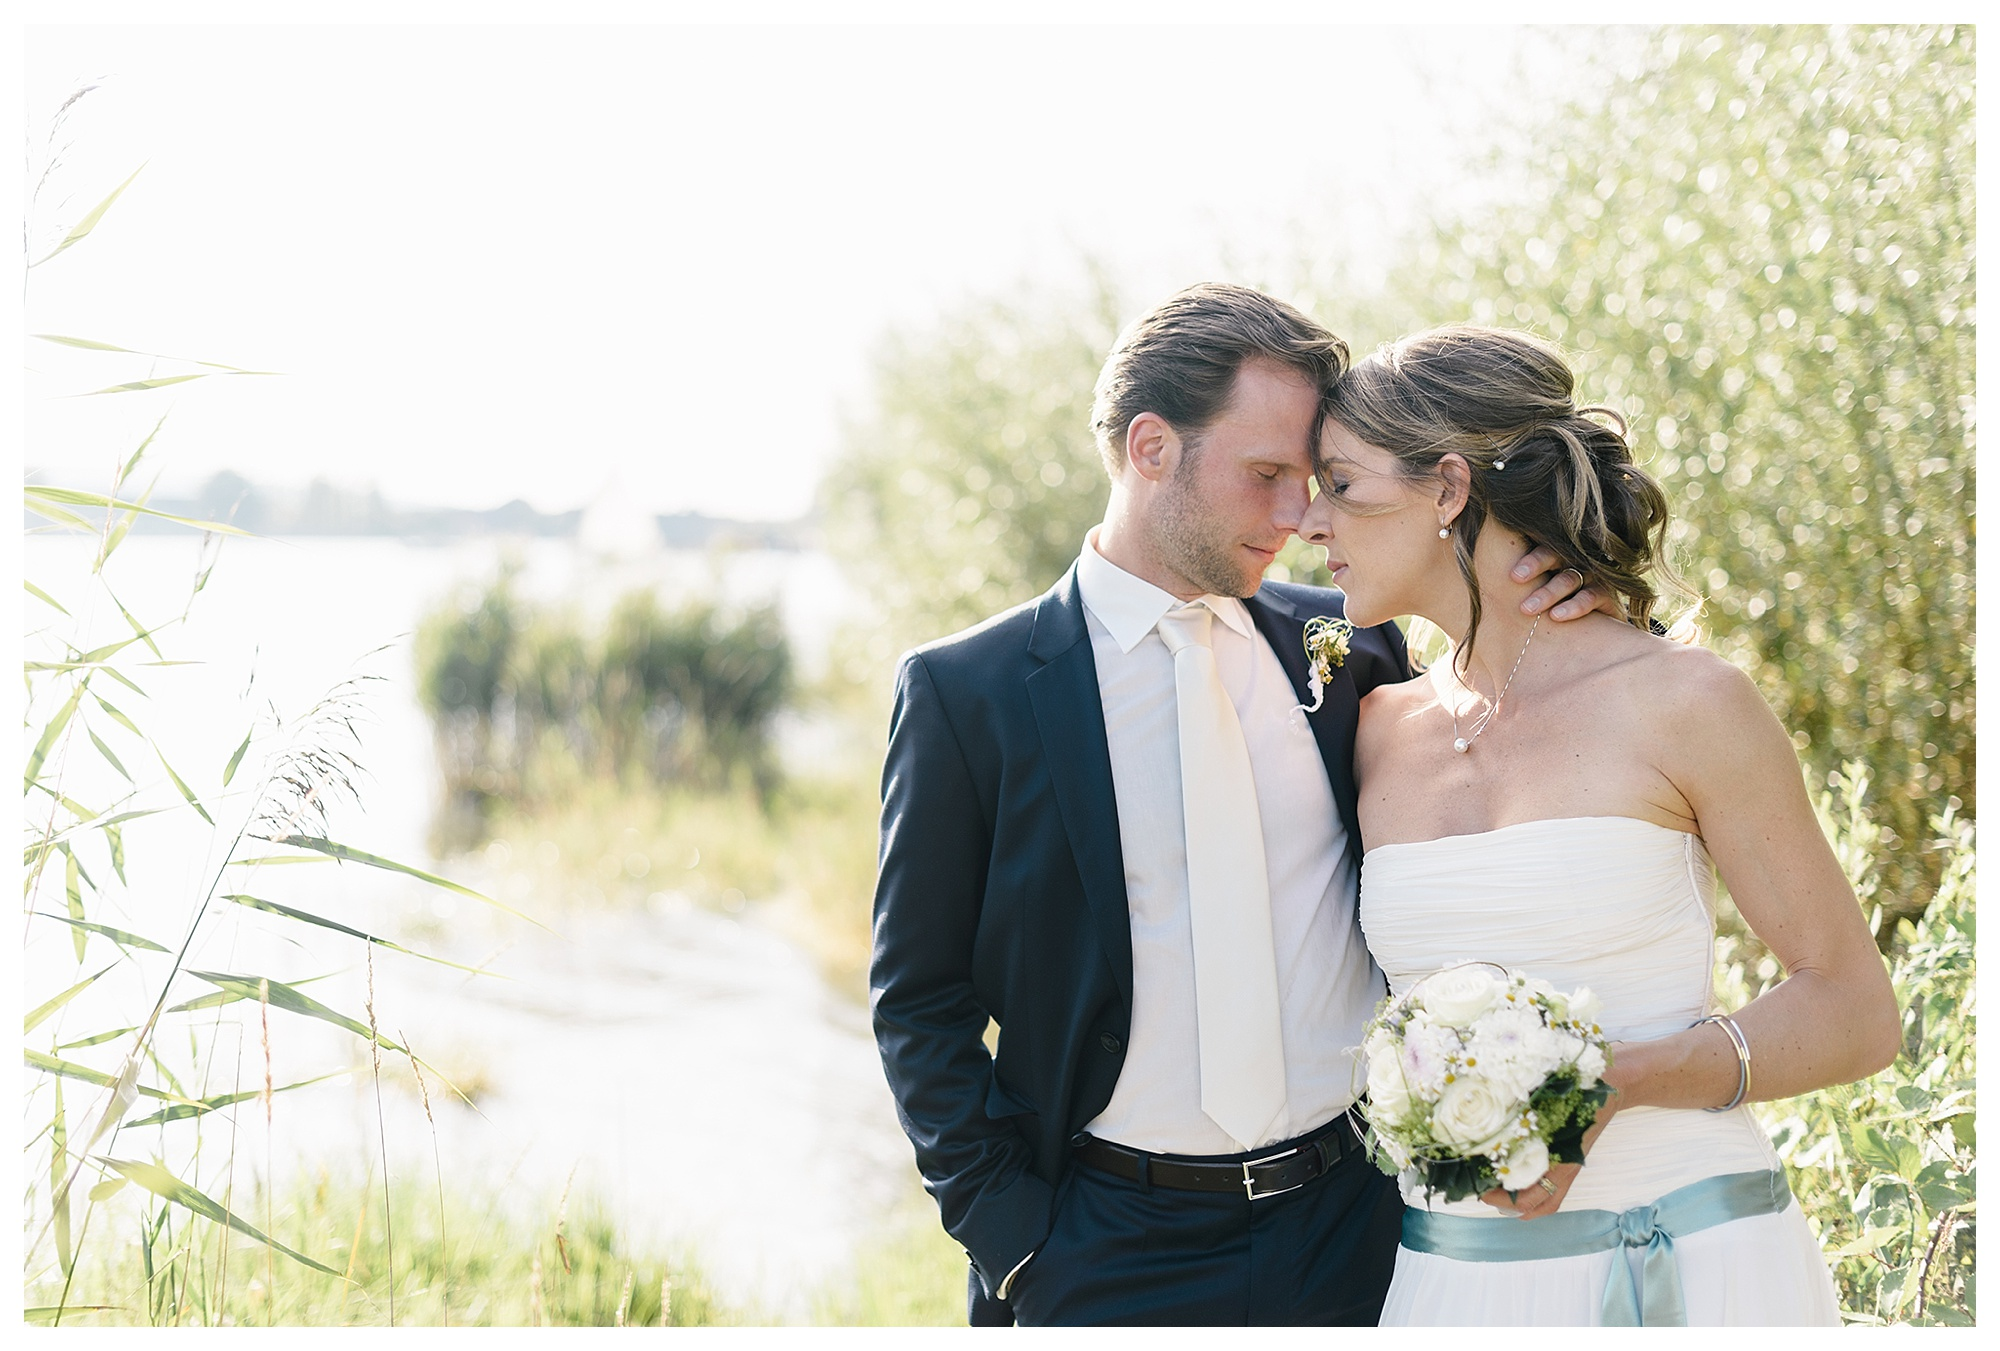 Fotograf Konstanz - Hochzeitsreportage Konstanz Raphael Nicole Elmar Feuerbacher Photography Hochzeit Portrait 39 - Wedding in Constance at Lake of Constance  - 62 -